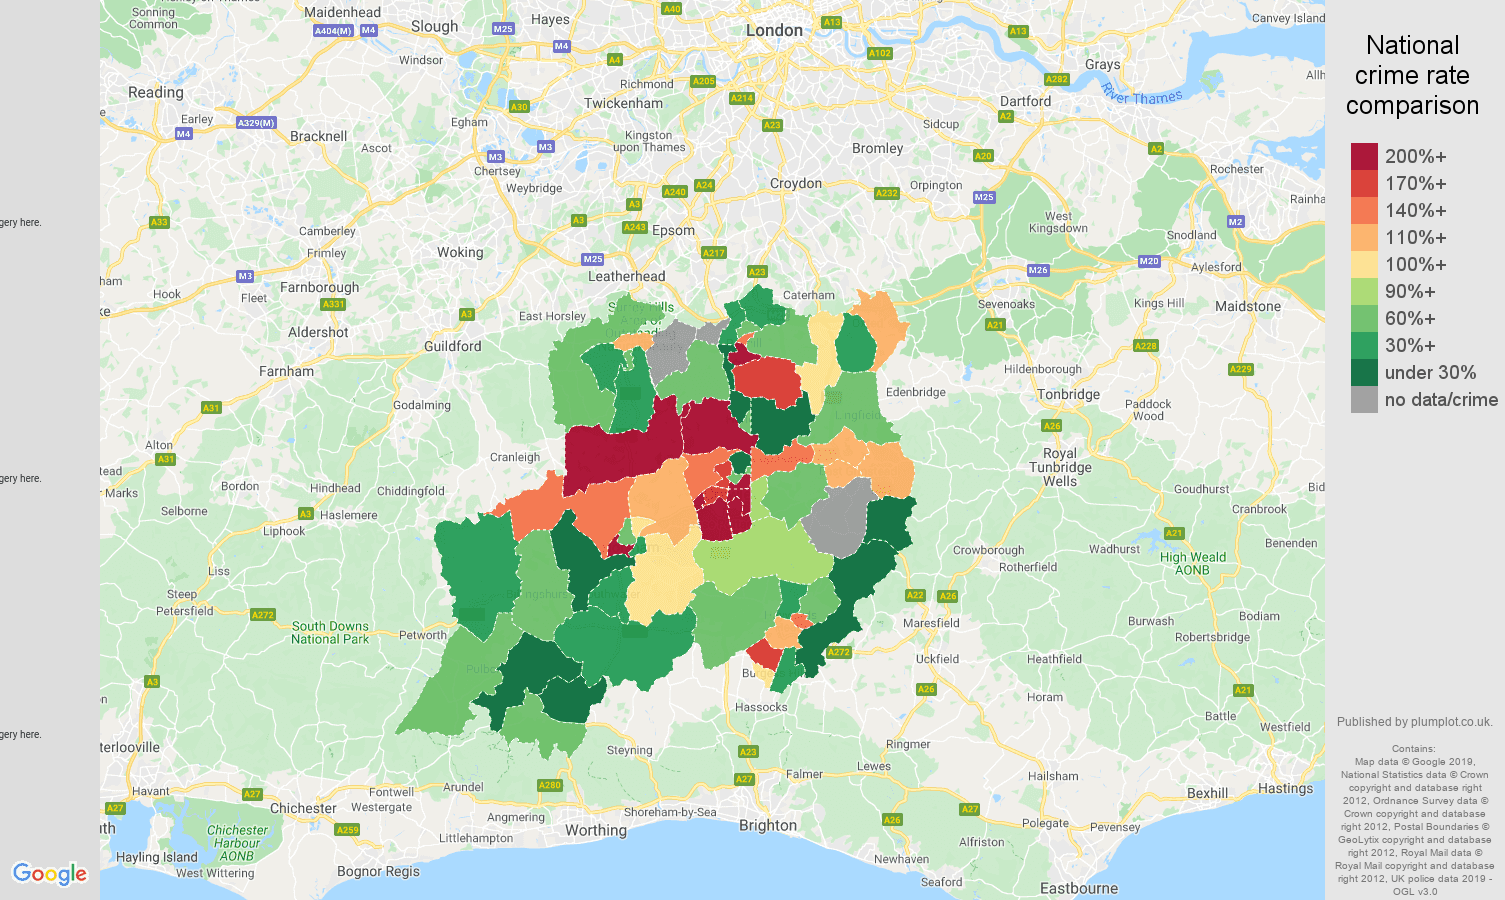 Redhill possession of weapons crime rate comparison map